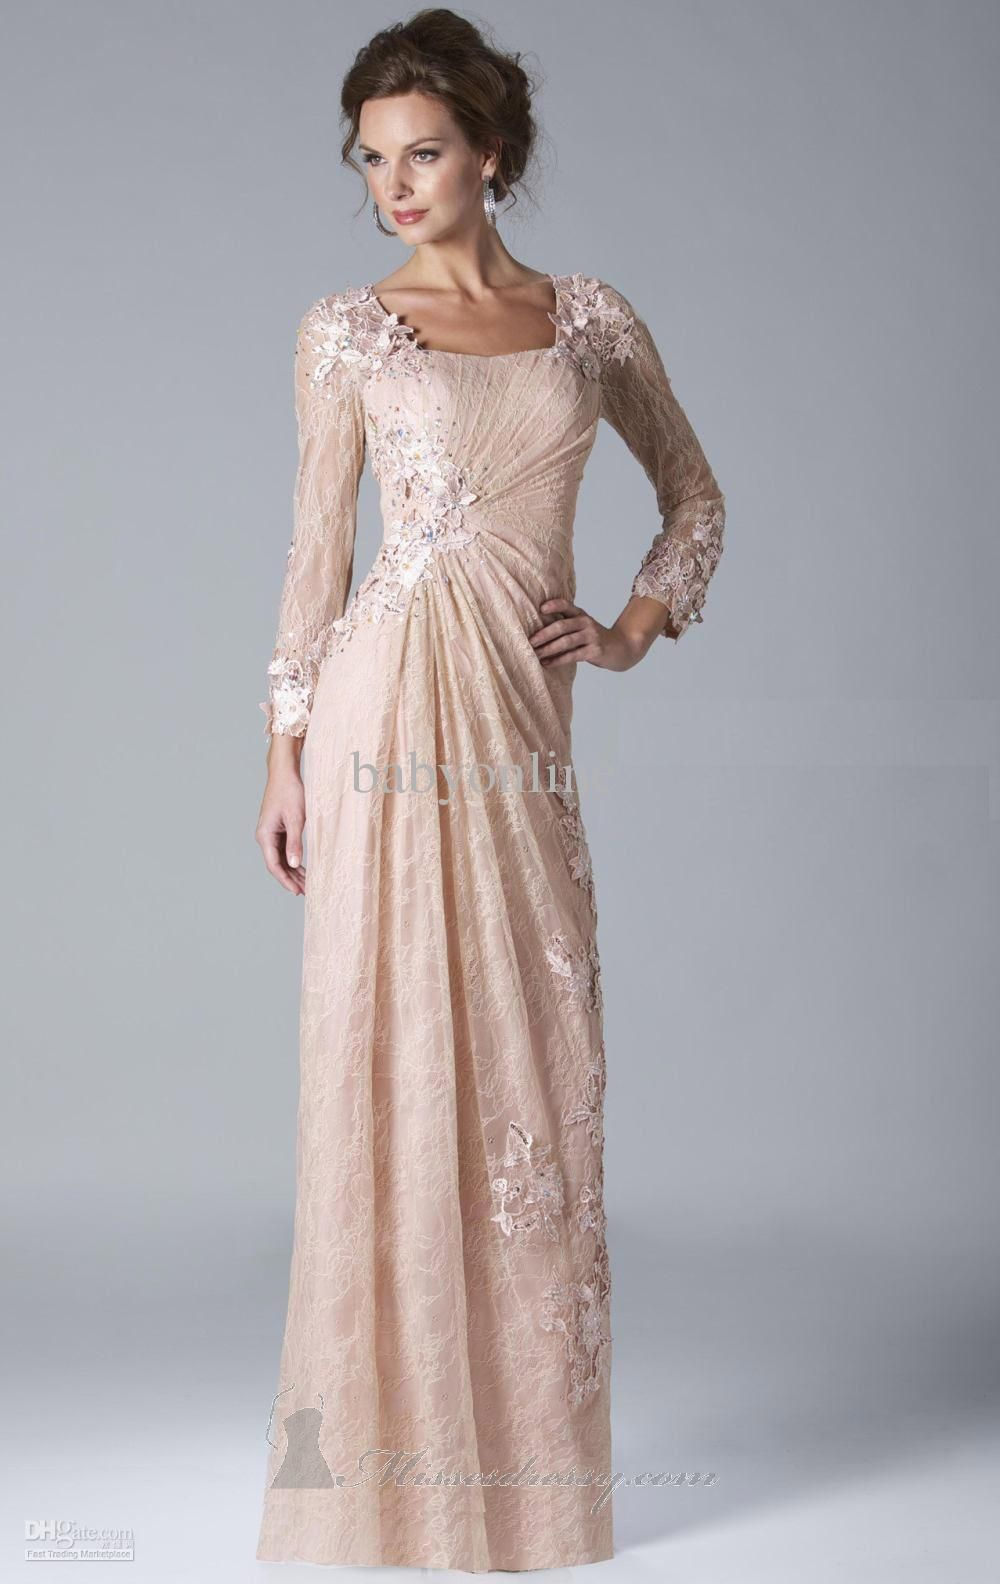 Sexy Lace Evening Dresses Long Sleeves Beaded Mother Of The Bride Dresses  w034 7c6ab2bd8